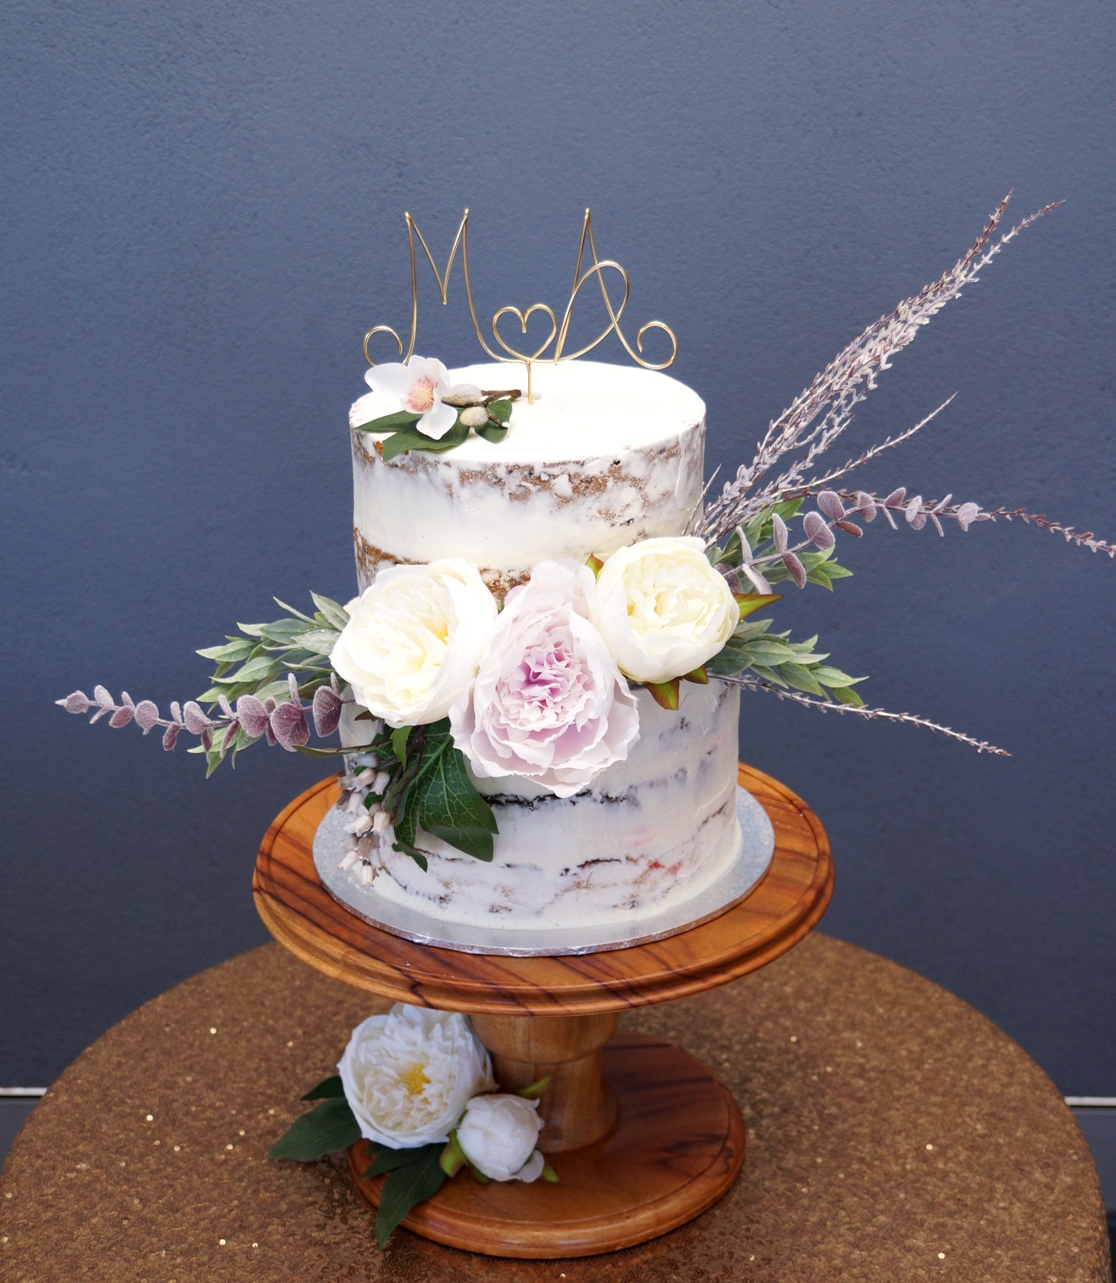 2 Tier Semi Naked with silk flowers